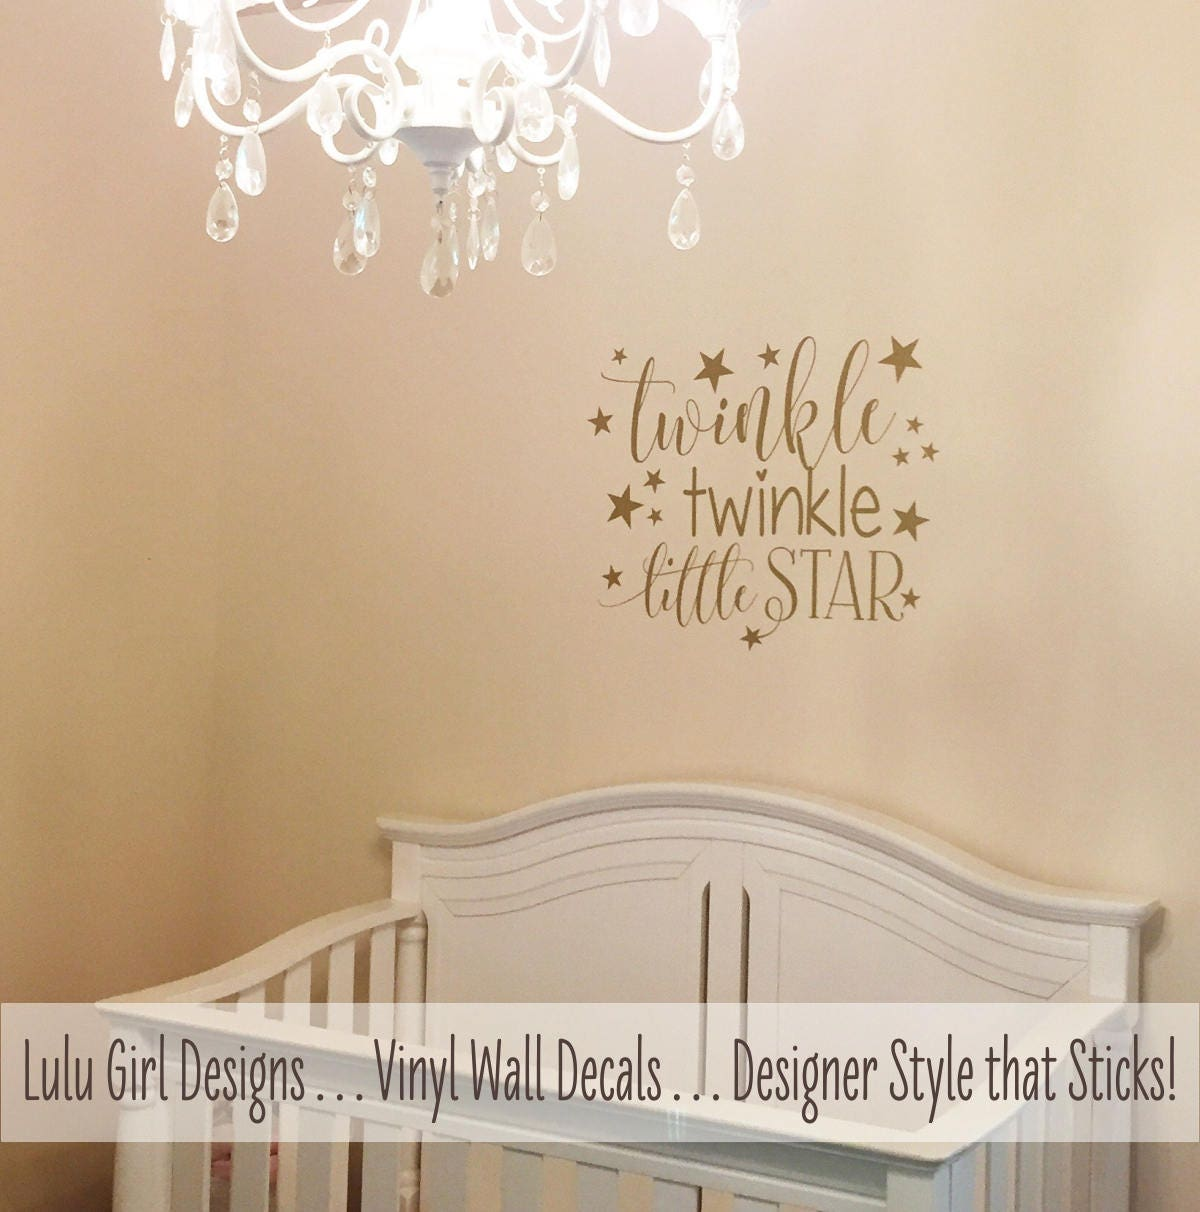 Twinkle twinkle little star nursery decor star wall decals zoom amipublicfo Choice Image